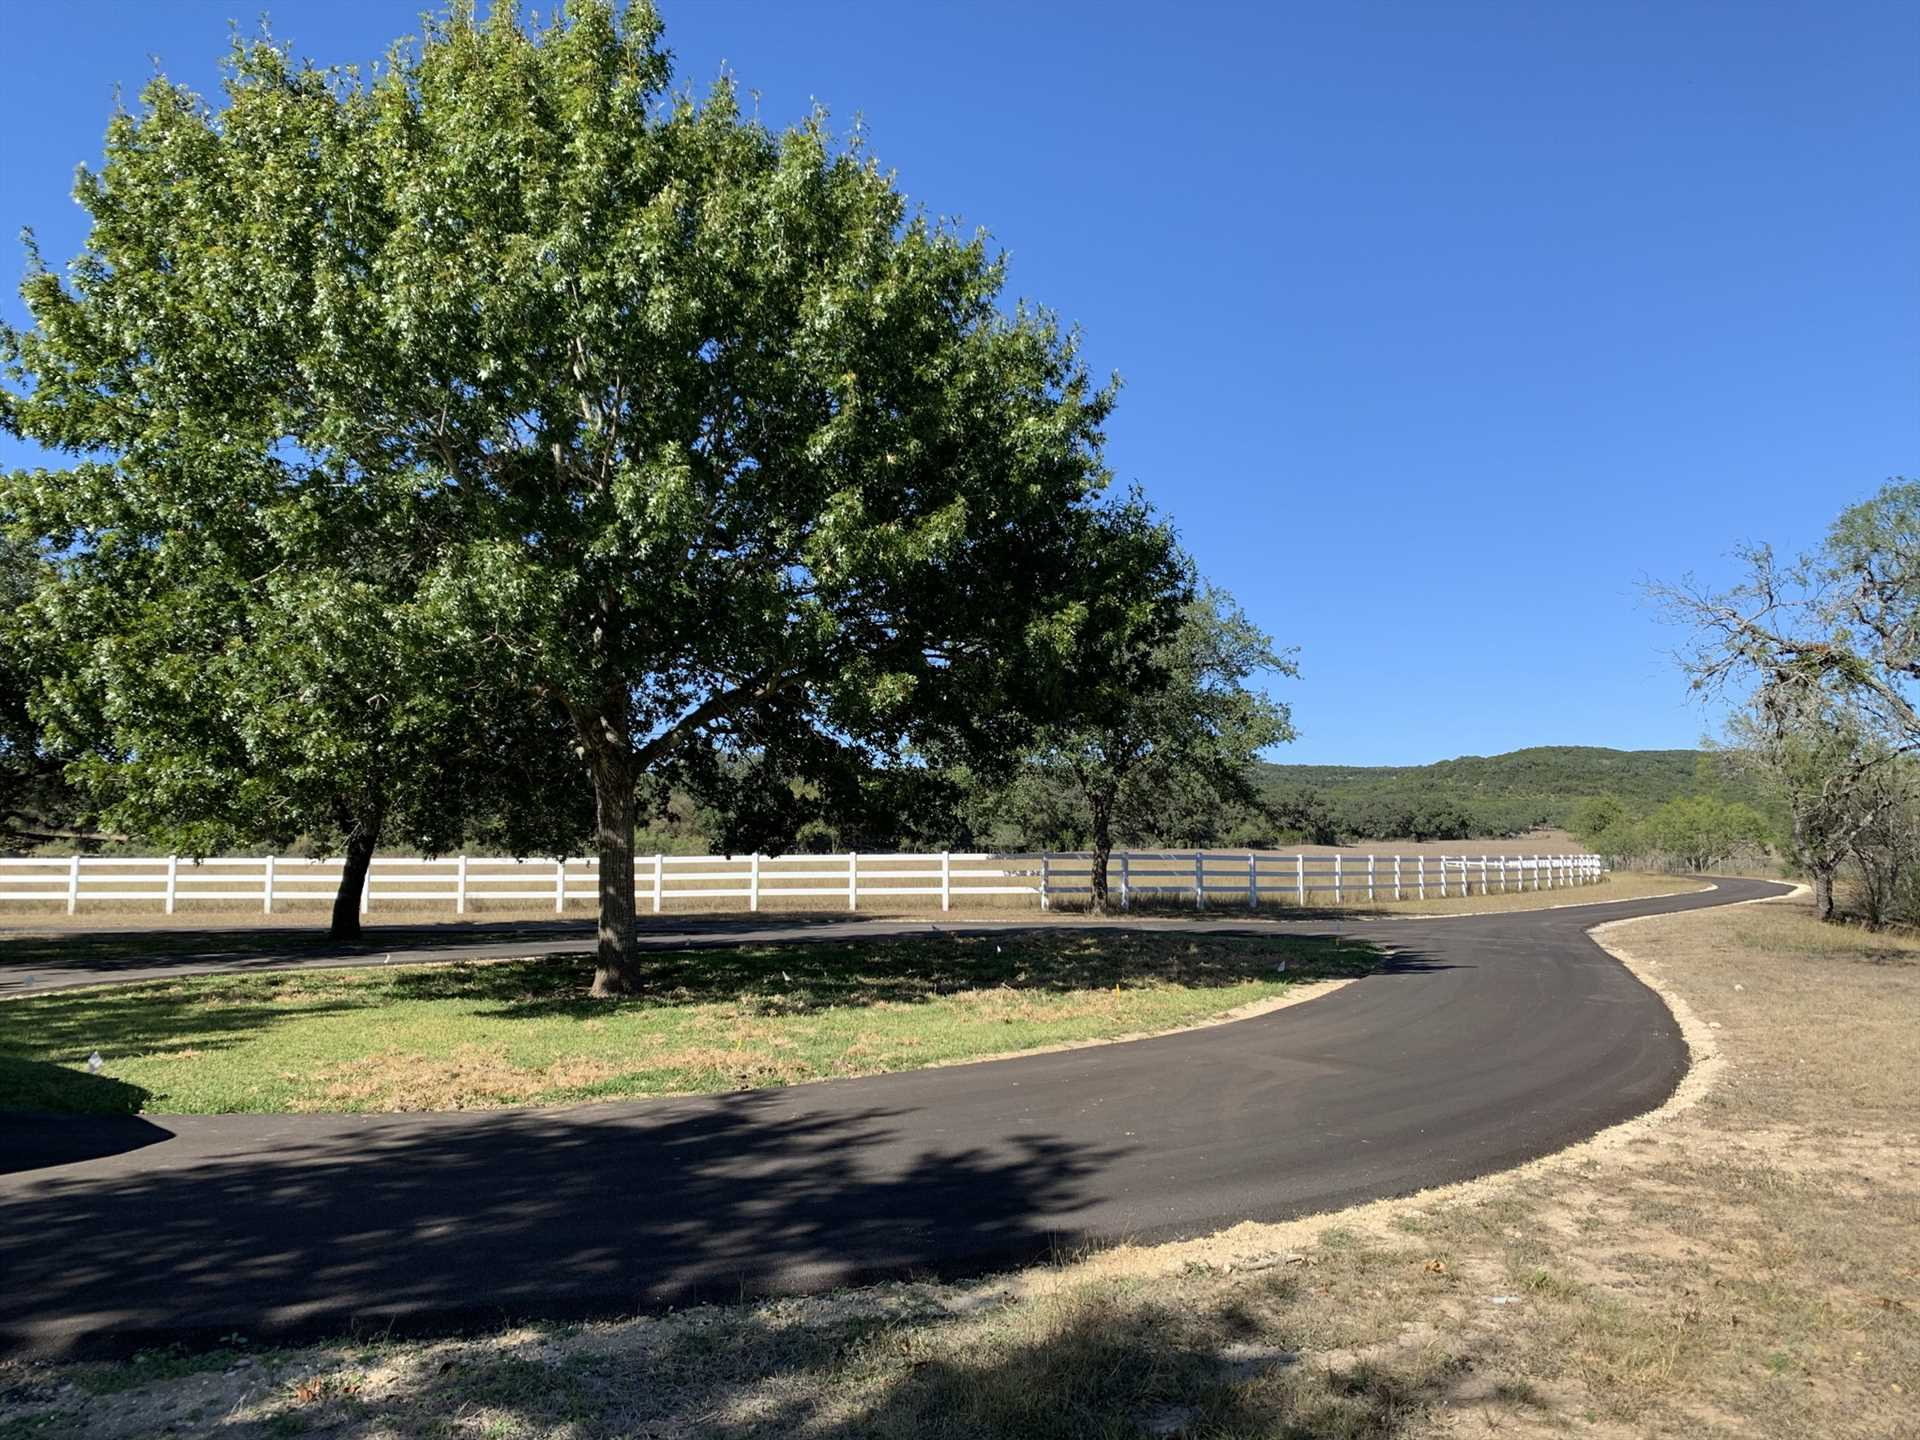 Many miles of Hill Country roads surround San Geronimo Creek, and they're perfect for a sightseeing tour of this beautiful region!